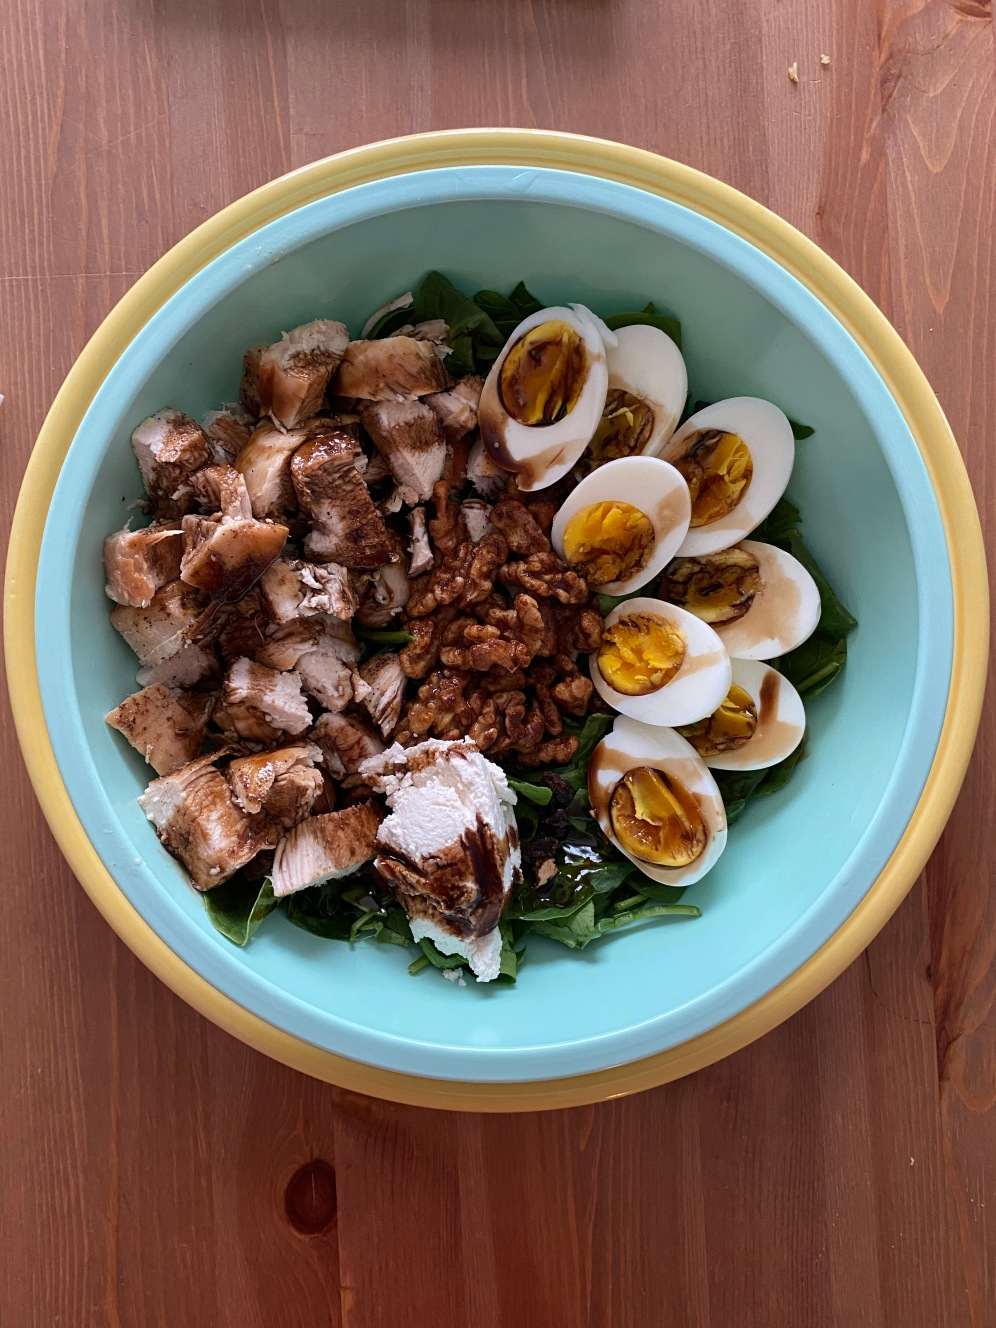 Cobb Salad with grilled chicken, boiled eggs, sweetened and butter fried walnuts, almond milk ricotta and hickory balsamic vinegar.